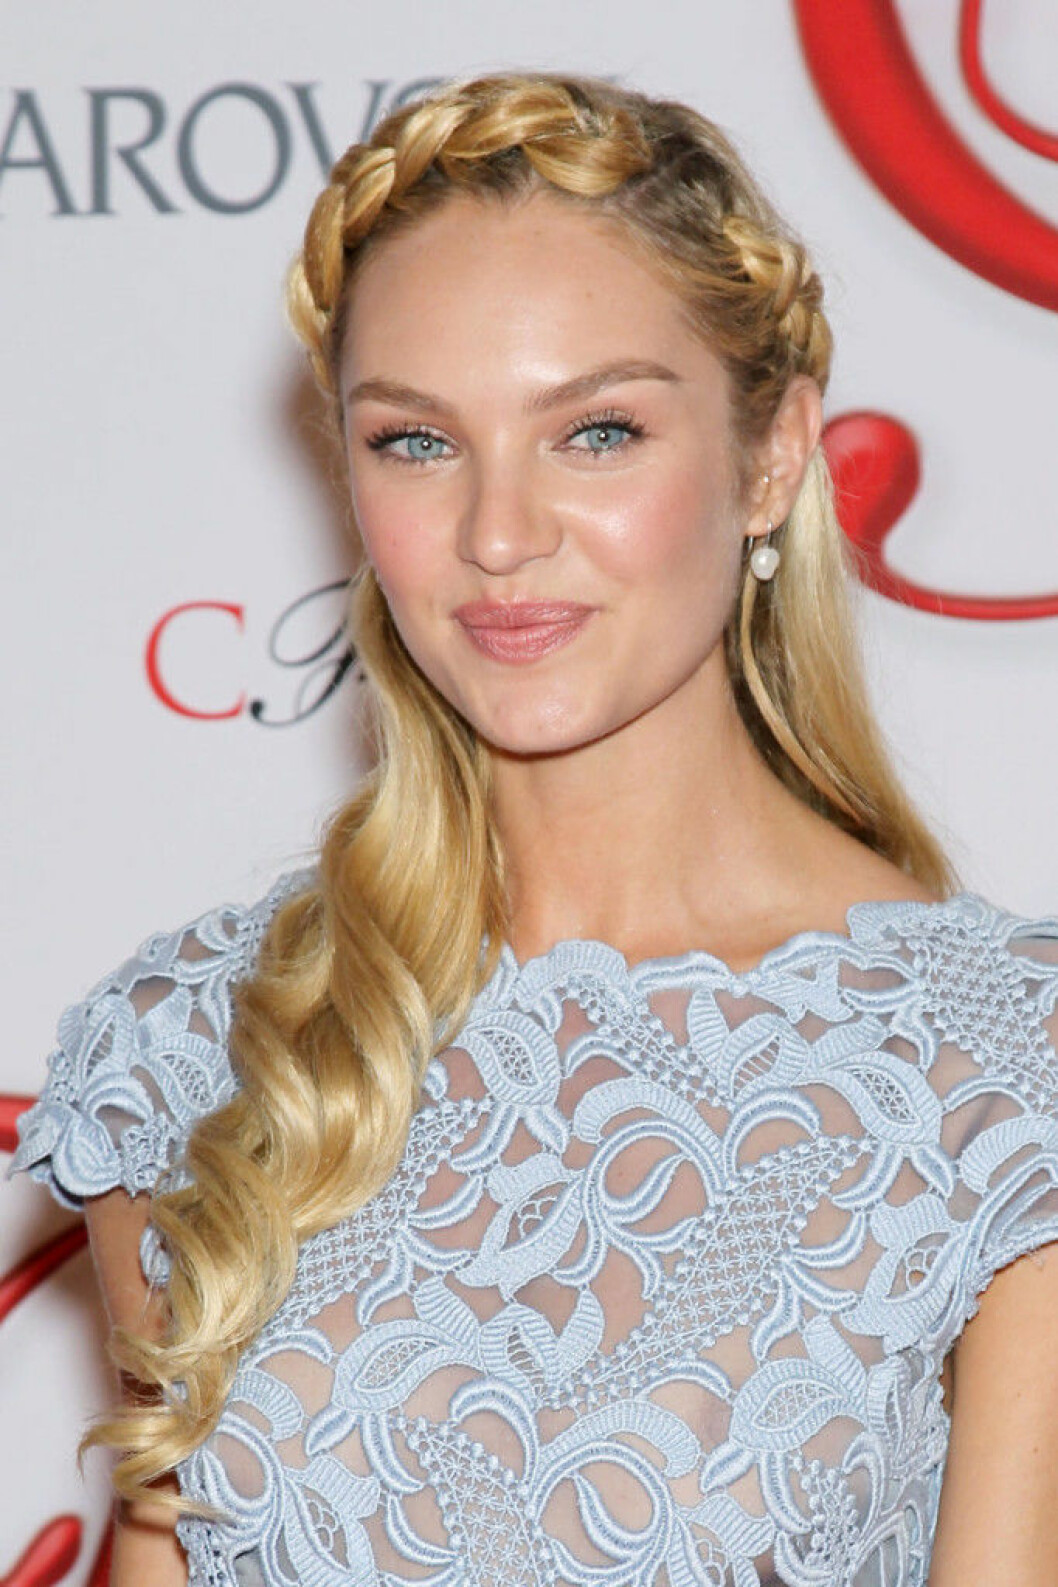 - New York, NY - 6/04/12 - The 2012 CFDA Fashion Awards Sponsored by Swarovski Arrivals -PICTURED: Candice Swanepoel -PHOTO by: Marion Curtis/Startraksphoto.com -FILENAME: MC335206.JPG -LOCATION: Alice Tully Hall at Lincoln Startraks Photo New York, NY For licensing please call 212-414-9464 or email sales@startraksphoto.com. ALL OVER PRESS